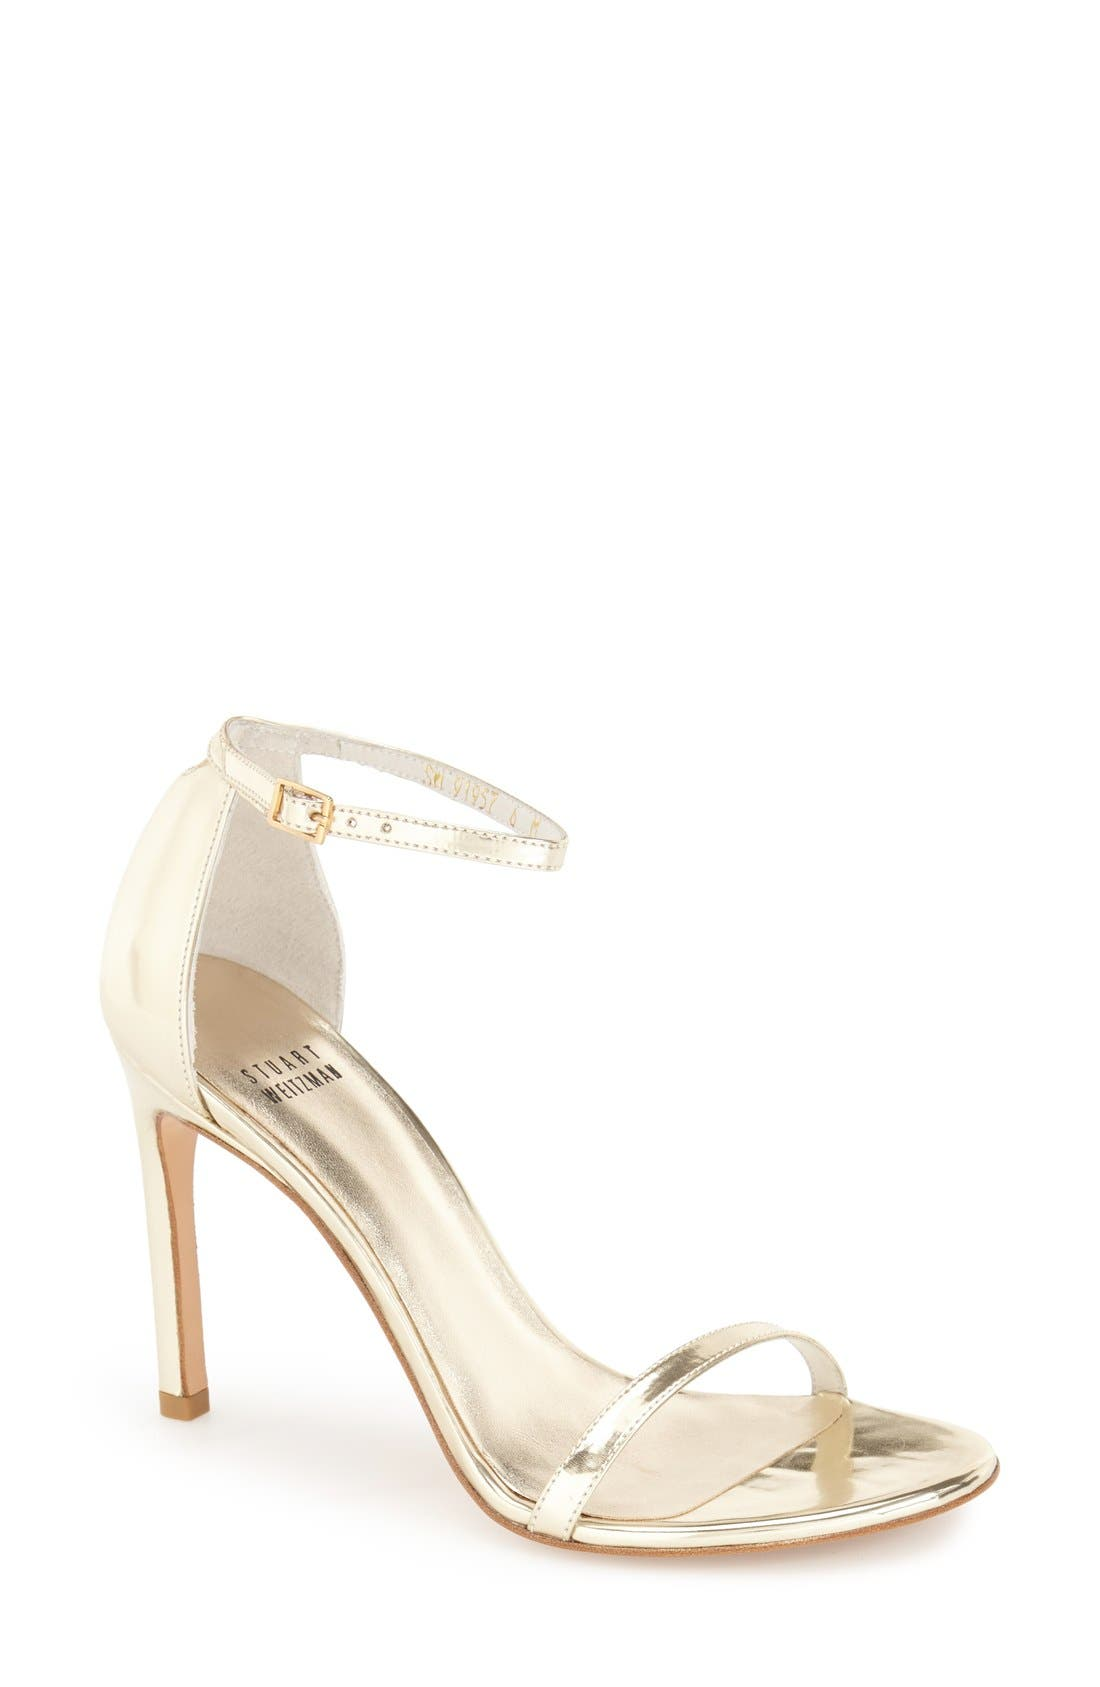 Nudistsong Ankle Strap Sandal,                             Main thumbnail 40, color,